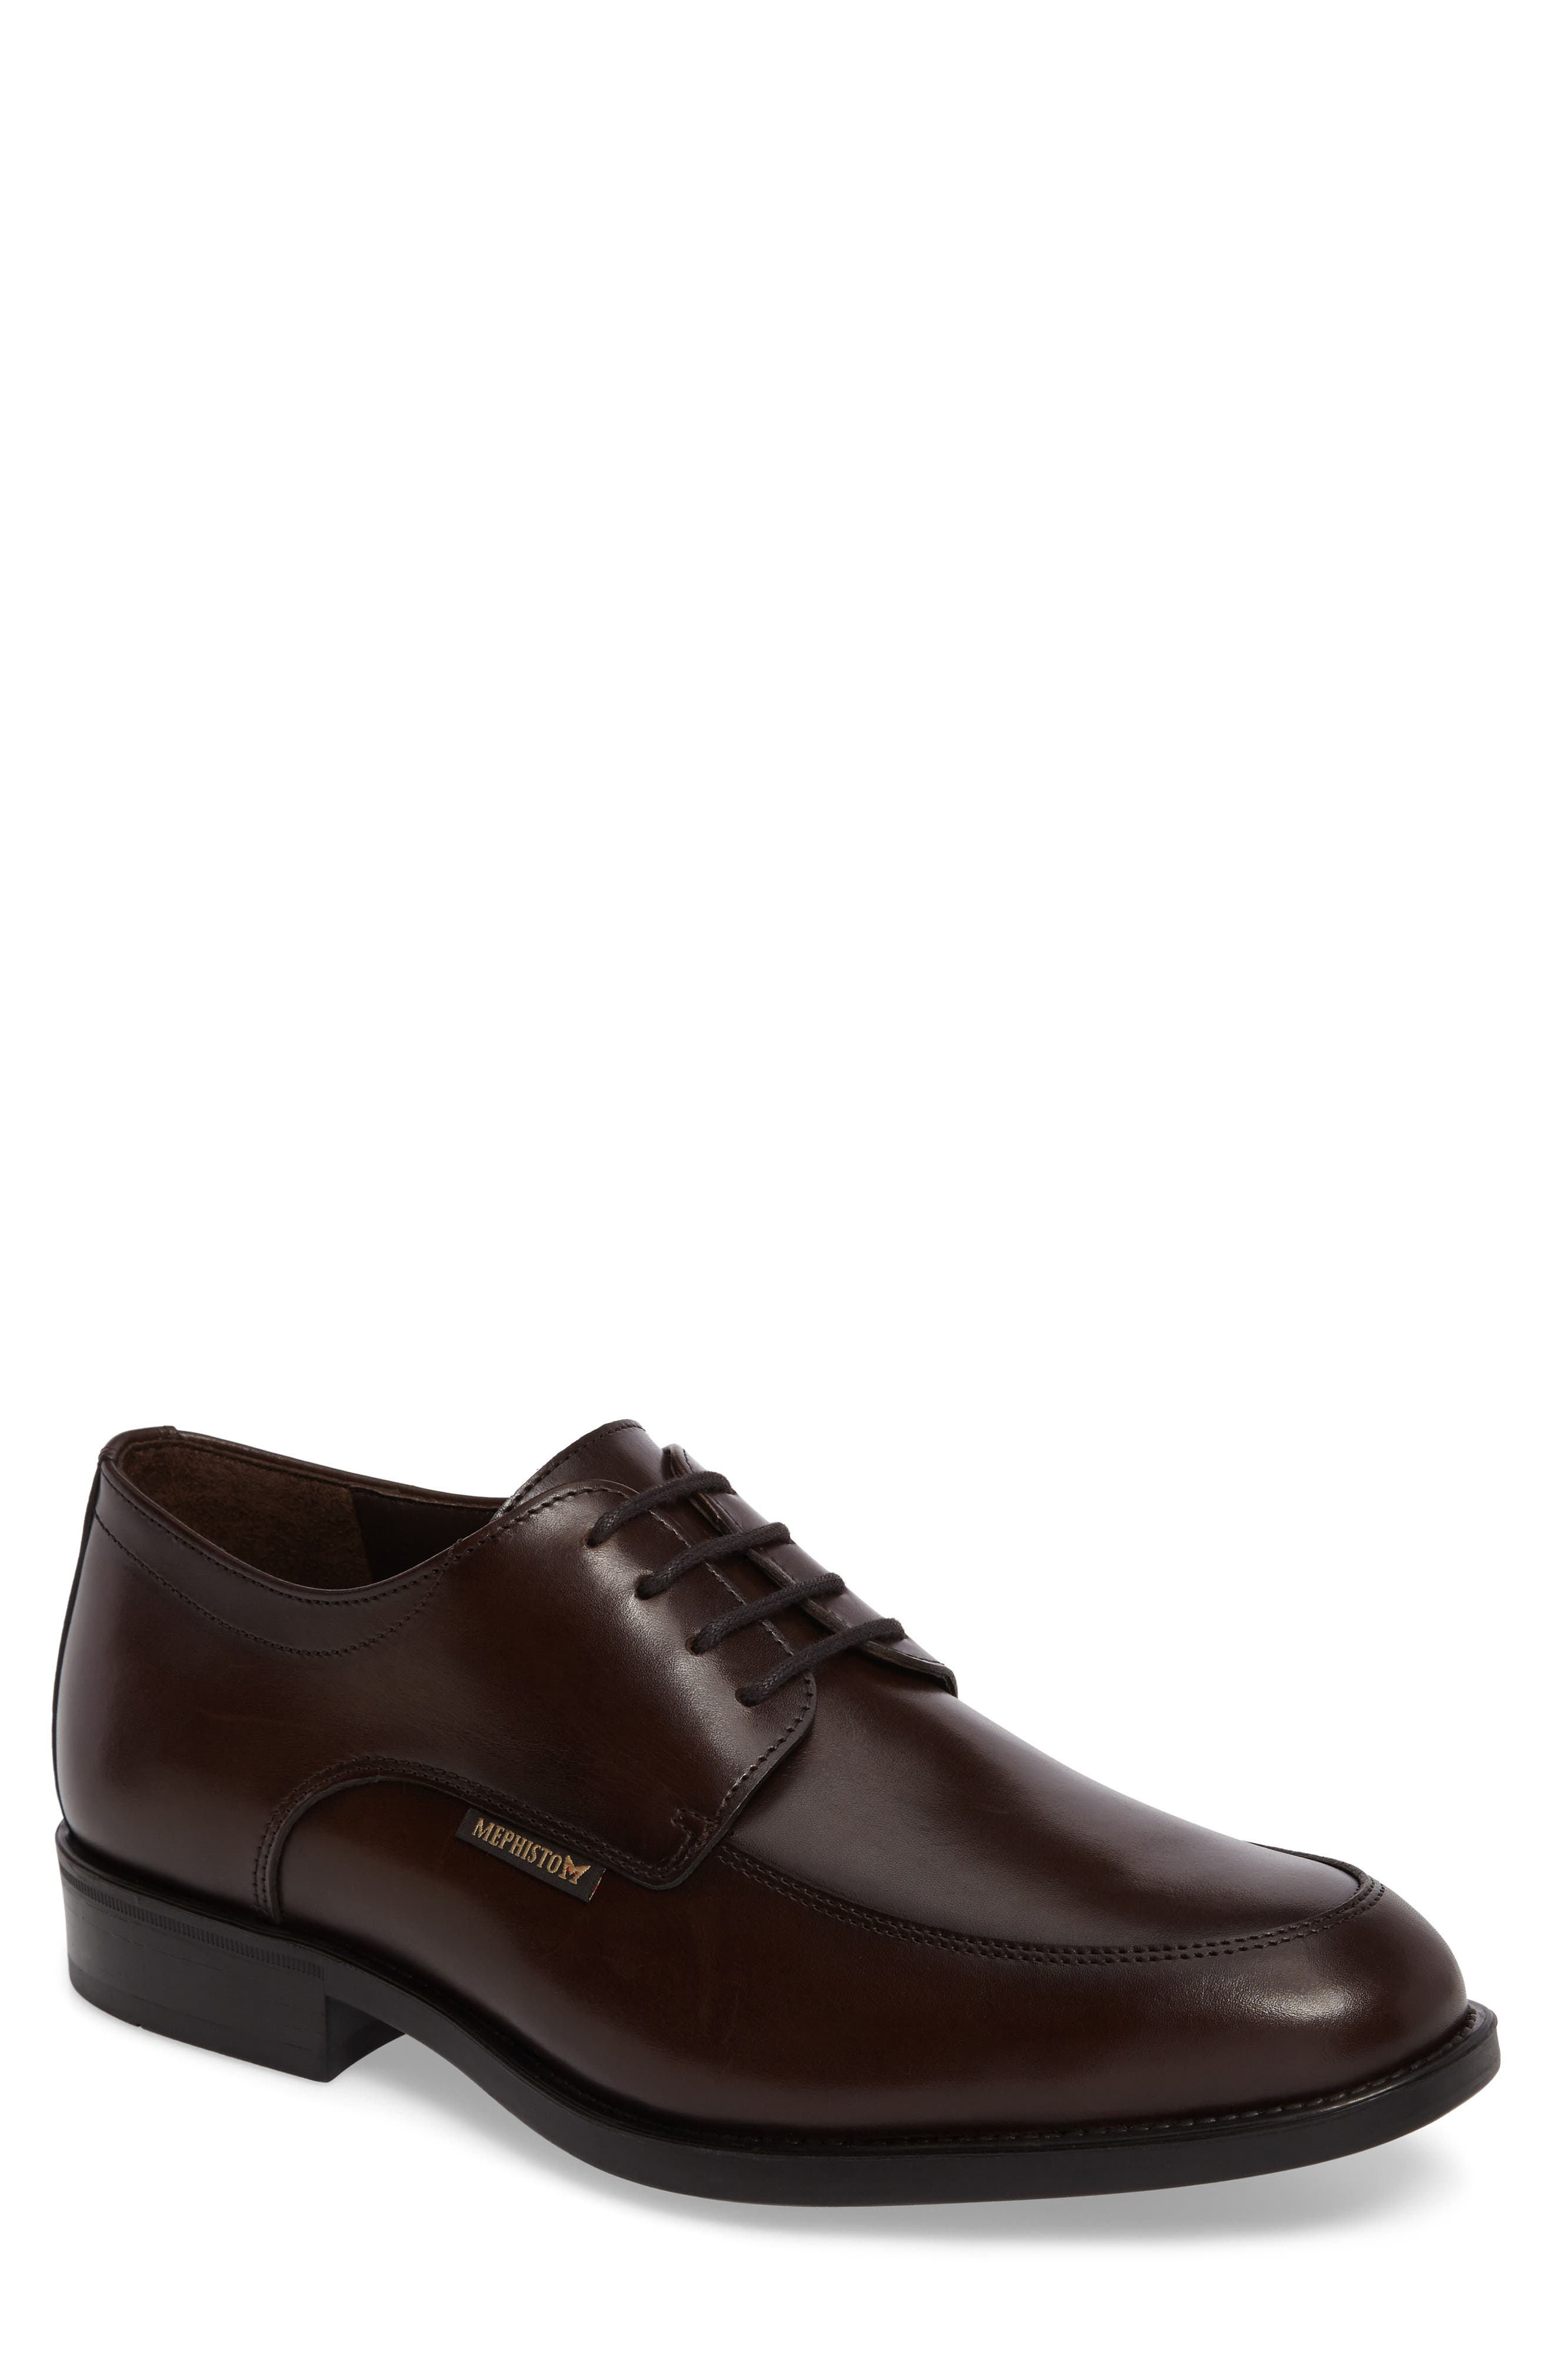 Carlo Moc Toe Derby,                             Main thumbnail 1, color,                             DARK BROWN LEATHER